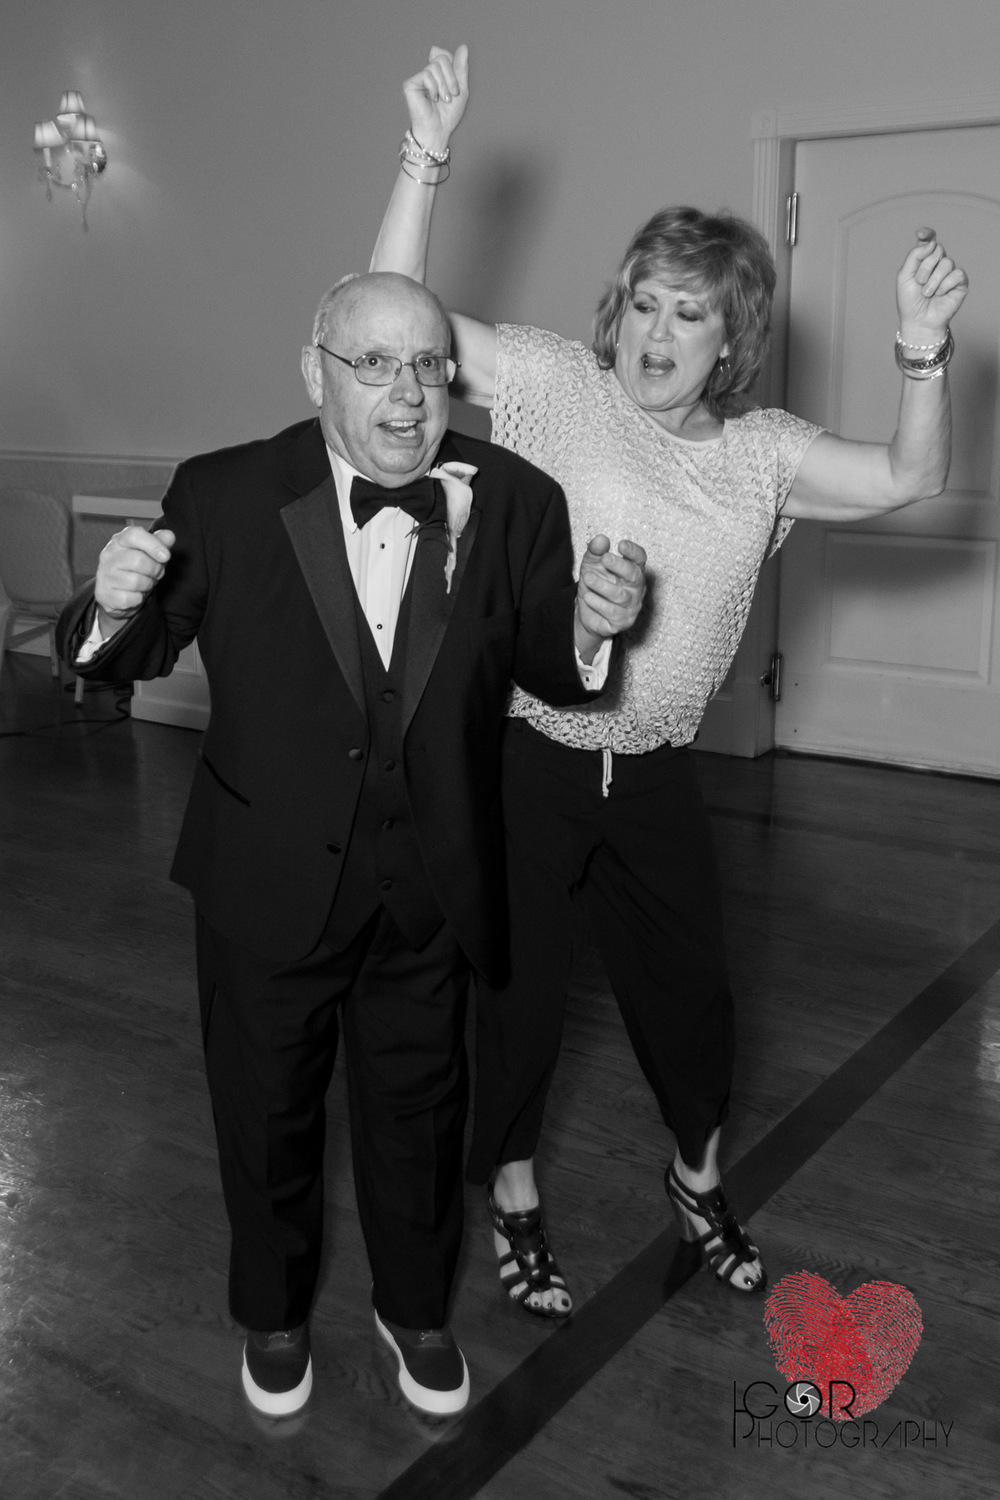 Granpa and Grandma tearing up the dance floor at the wedding reception